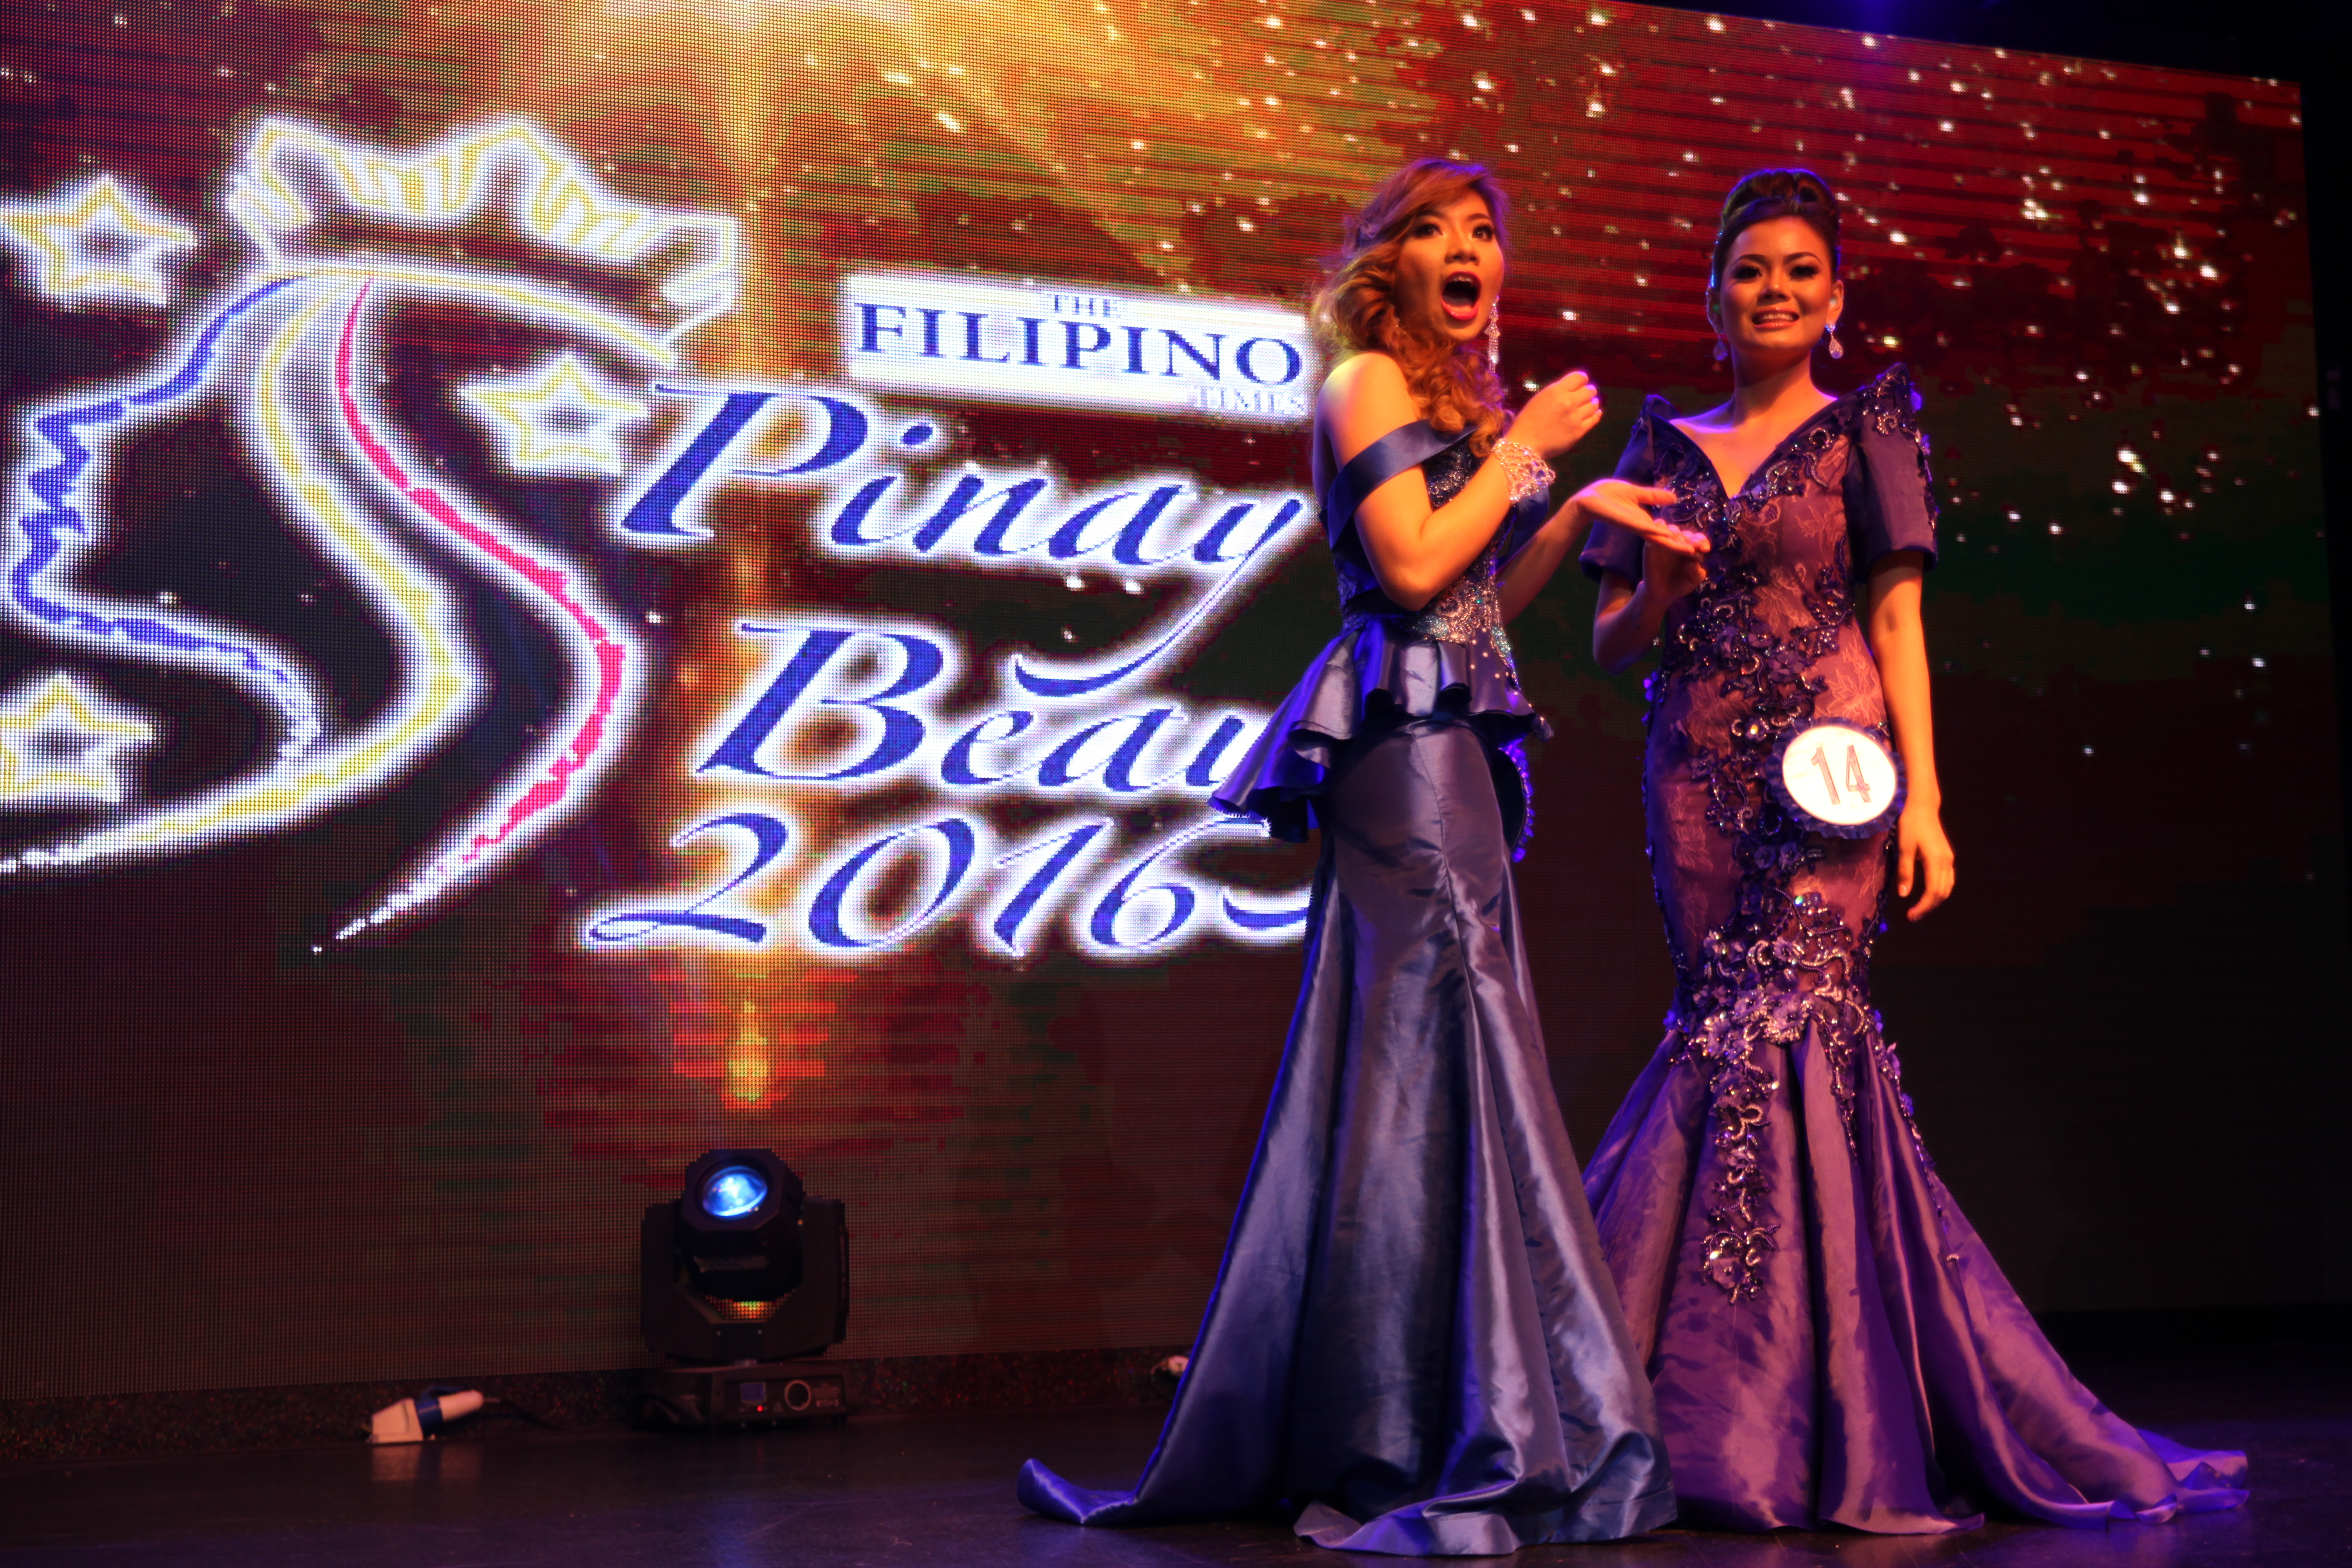 TFT Pinay Beauty 2016: A shining moment for Filipinas in the UAE